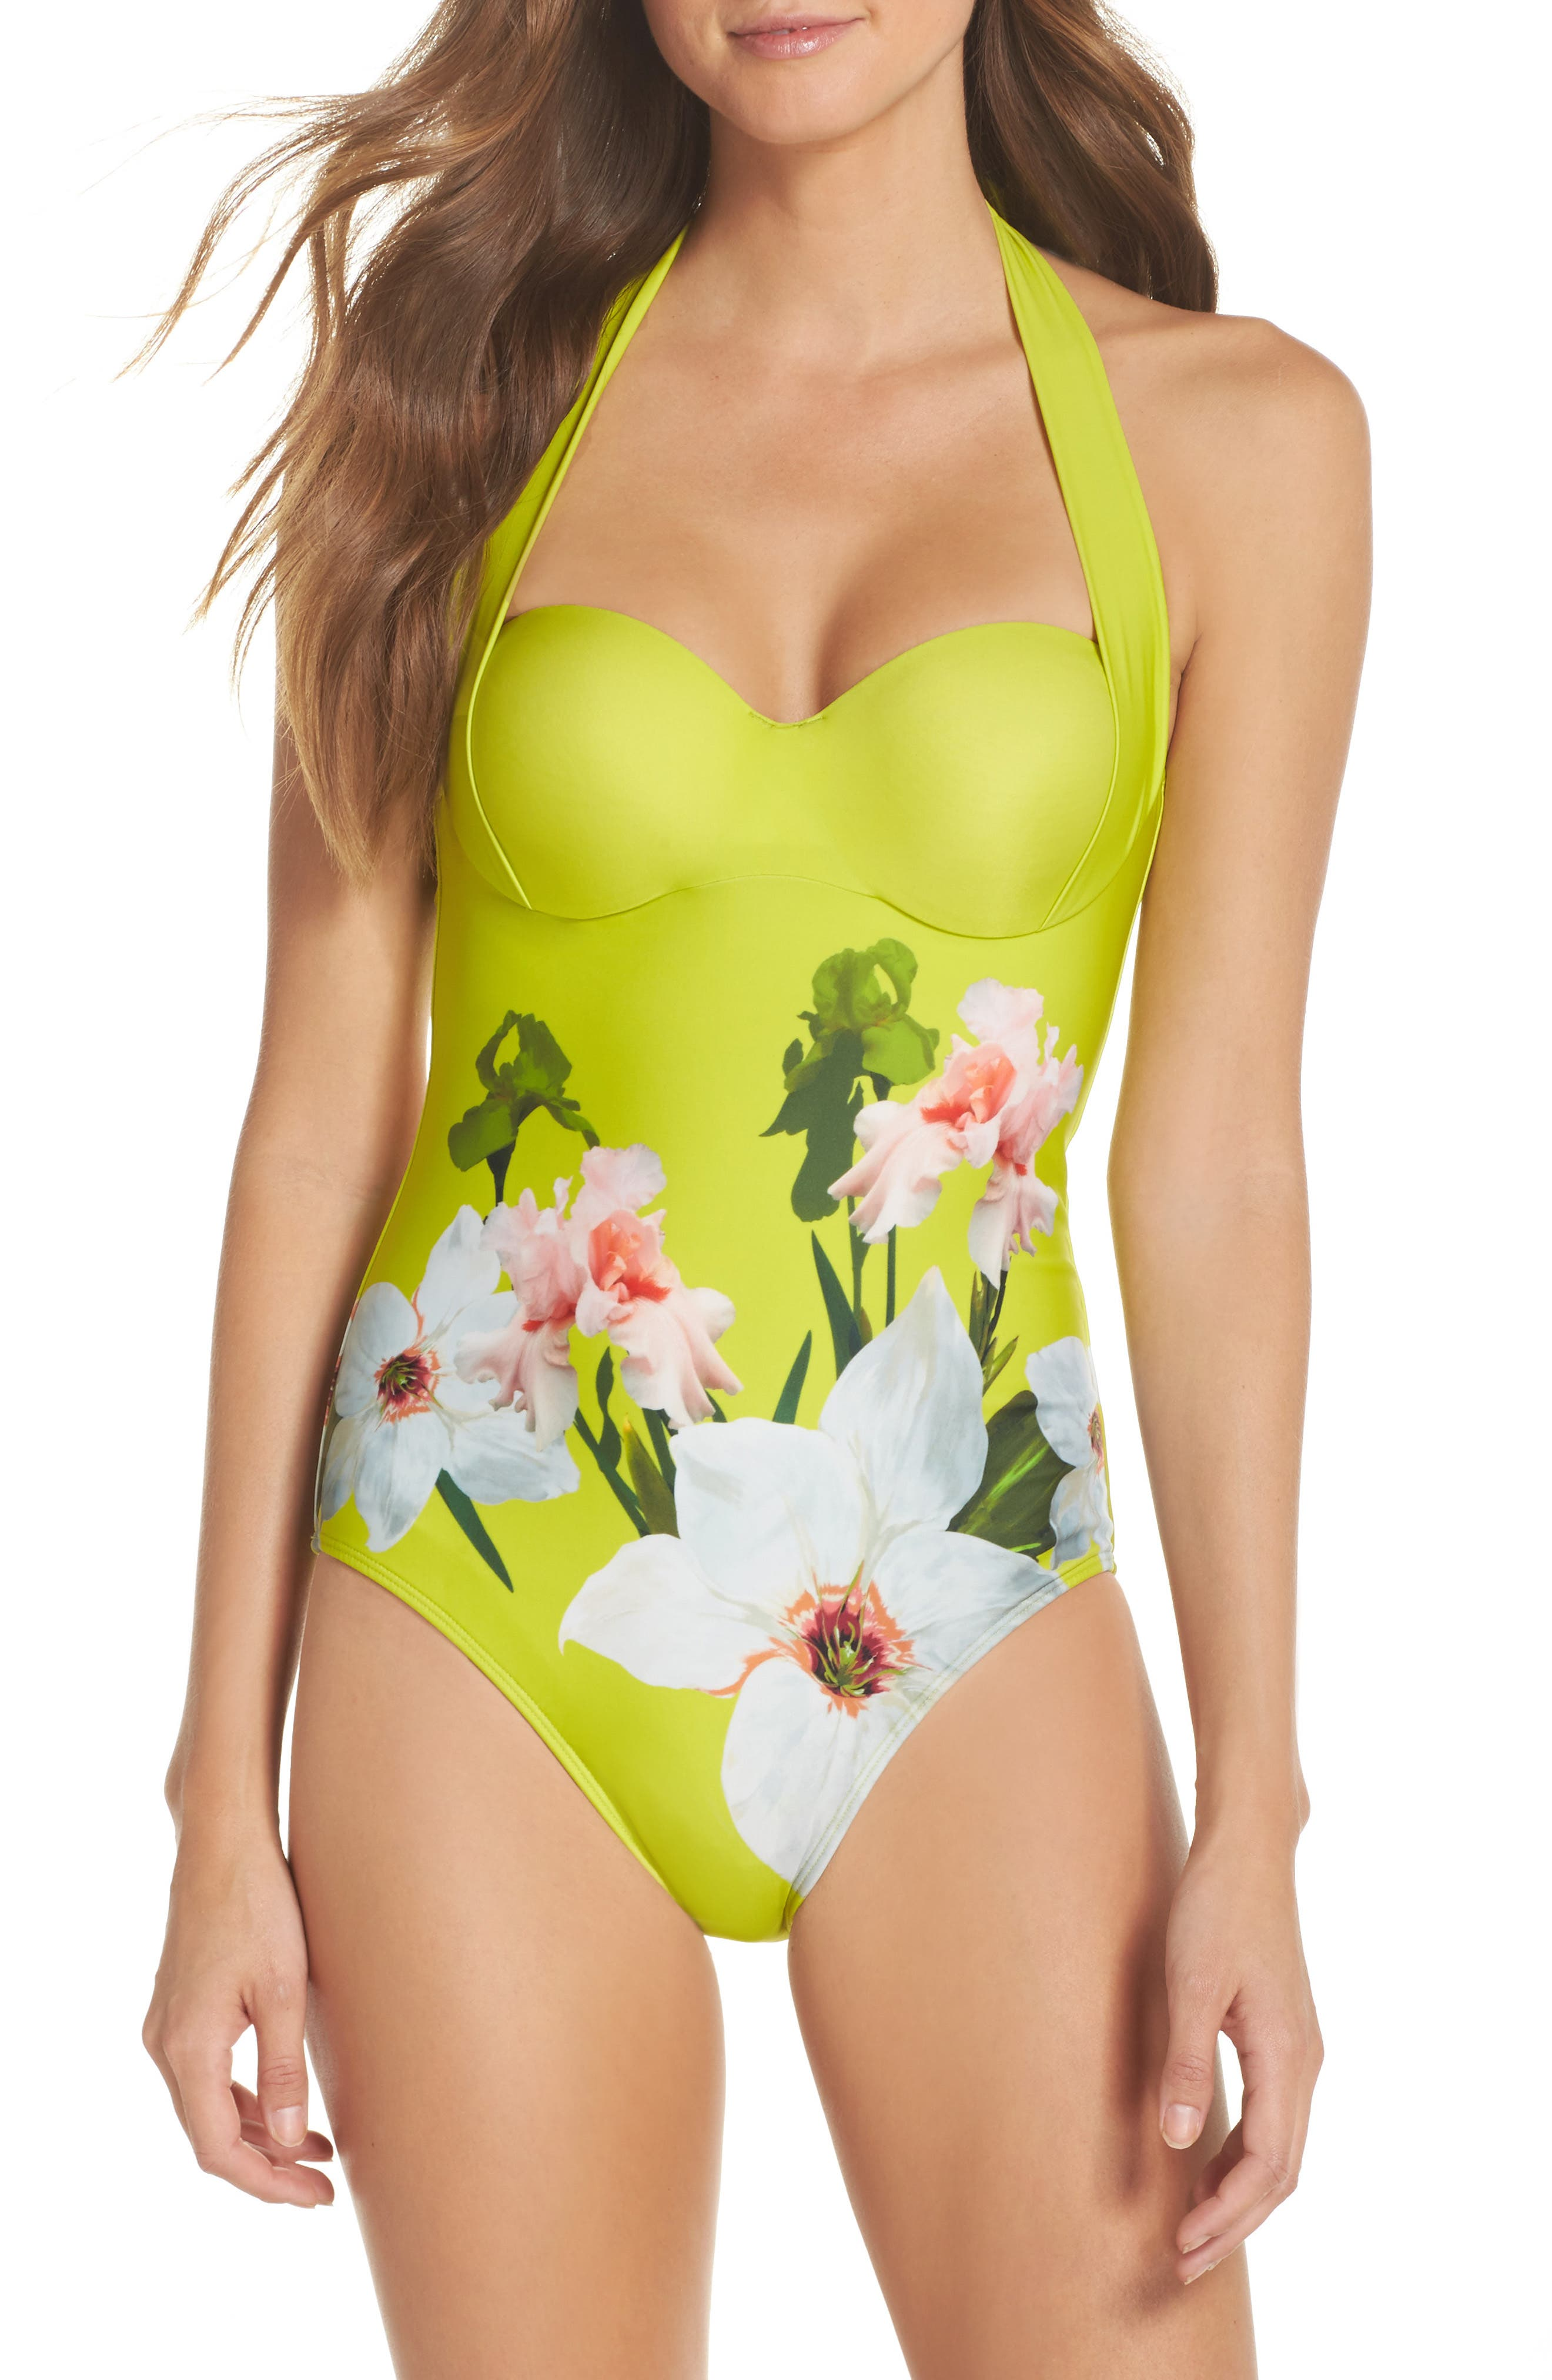 Chatsworth Bloom One-Piece Swimsuit,                             Main thumbnail 1, color,                             Light Green